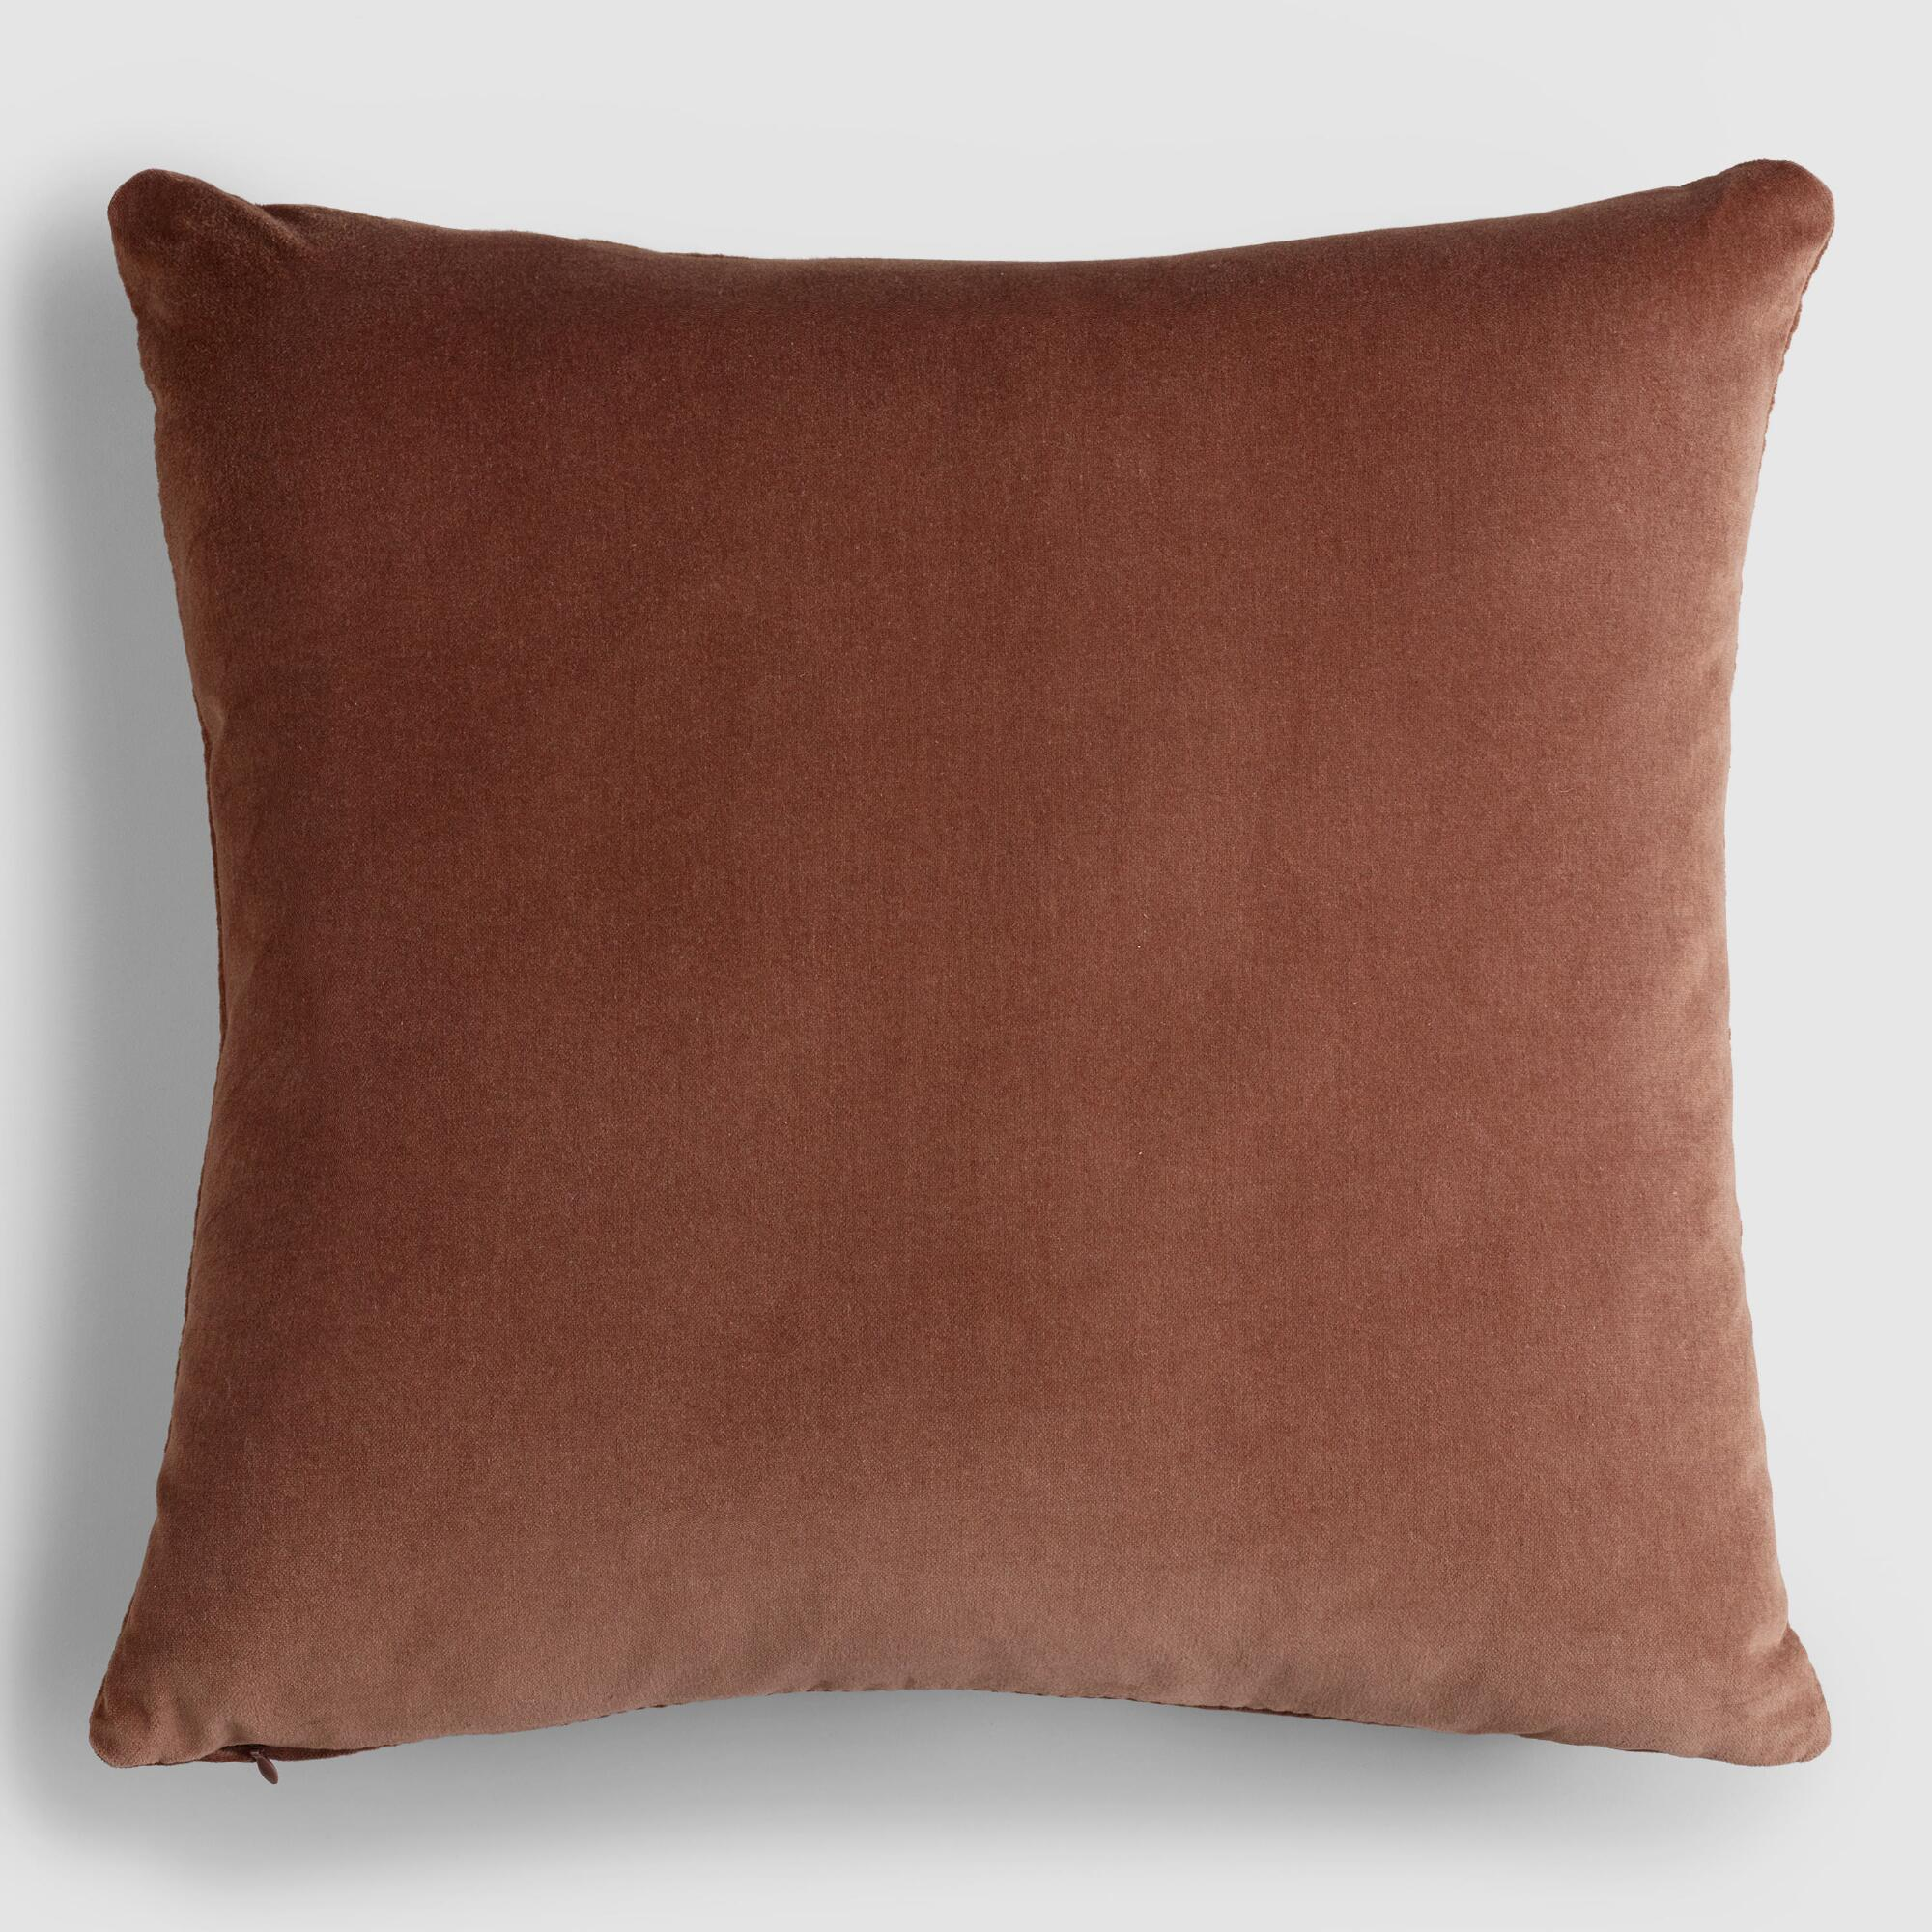 Throw Pillows Newport : Chocolate Brown Velvet Throw Pillow World Market